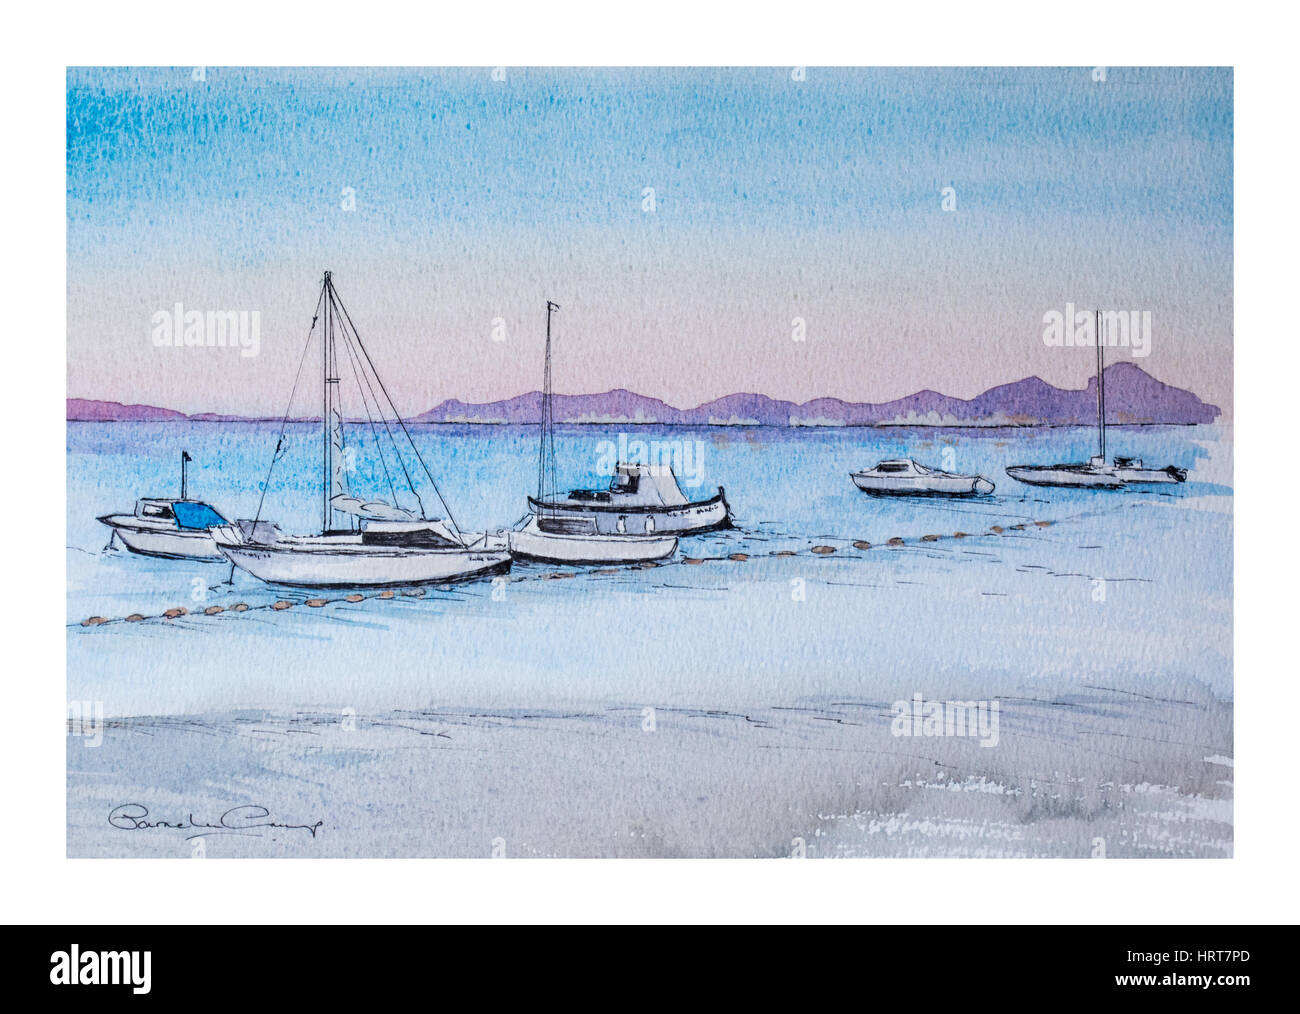 Watercolour painting of Boats on the Mar Menor, Los Alcazares, Murcia, Spain - Stock Image